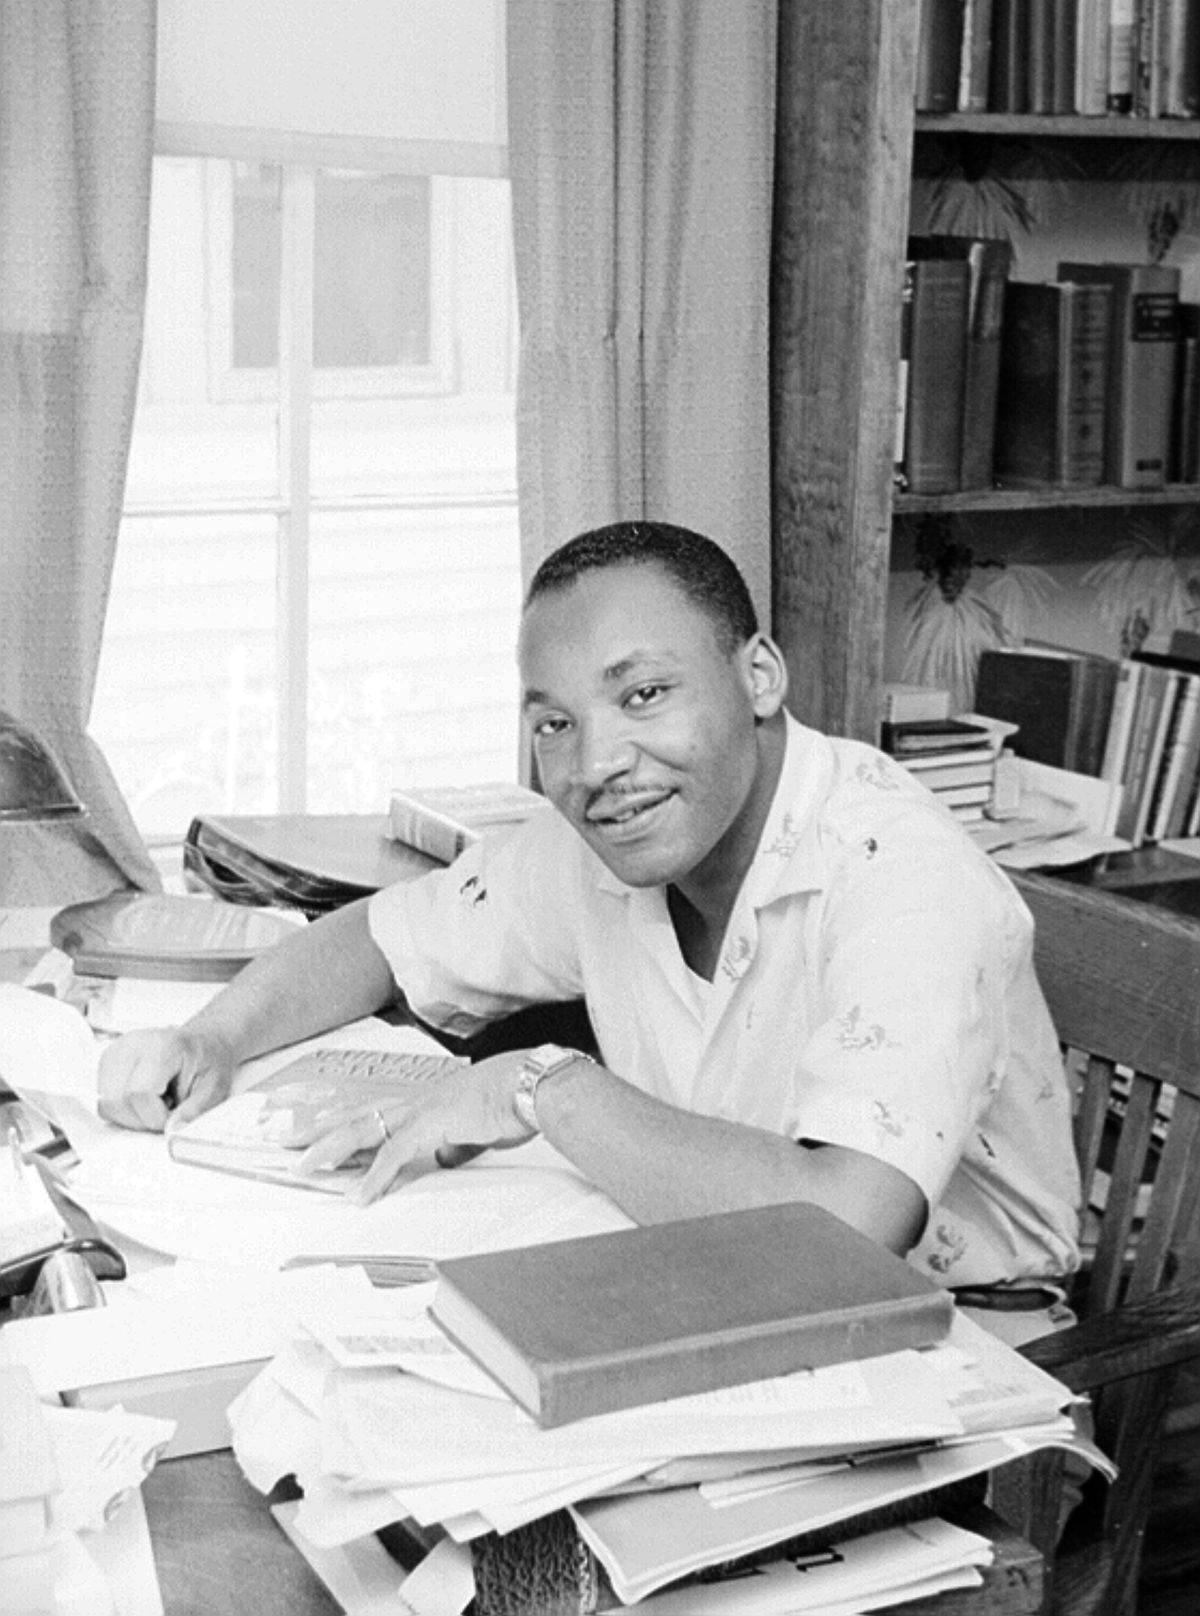 A young black man smiles in an archival black and white photo. He is leaning over his desk that is covered in paper and books, with his hand on a journal.